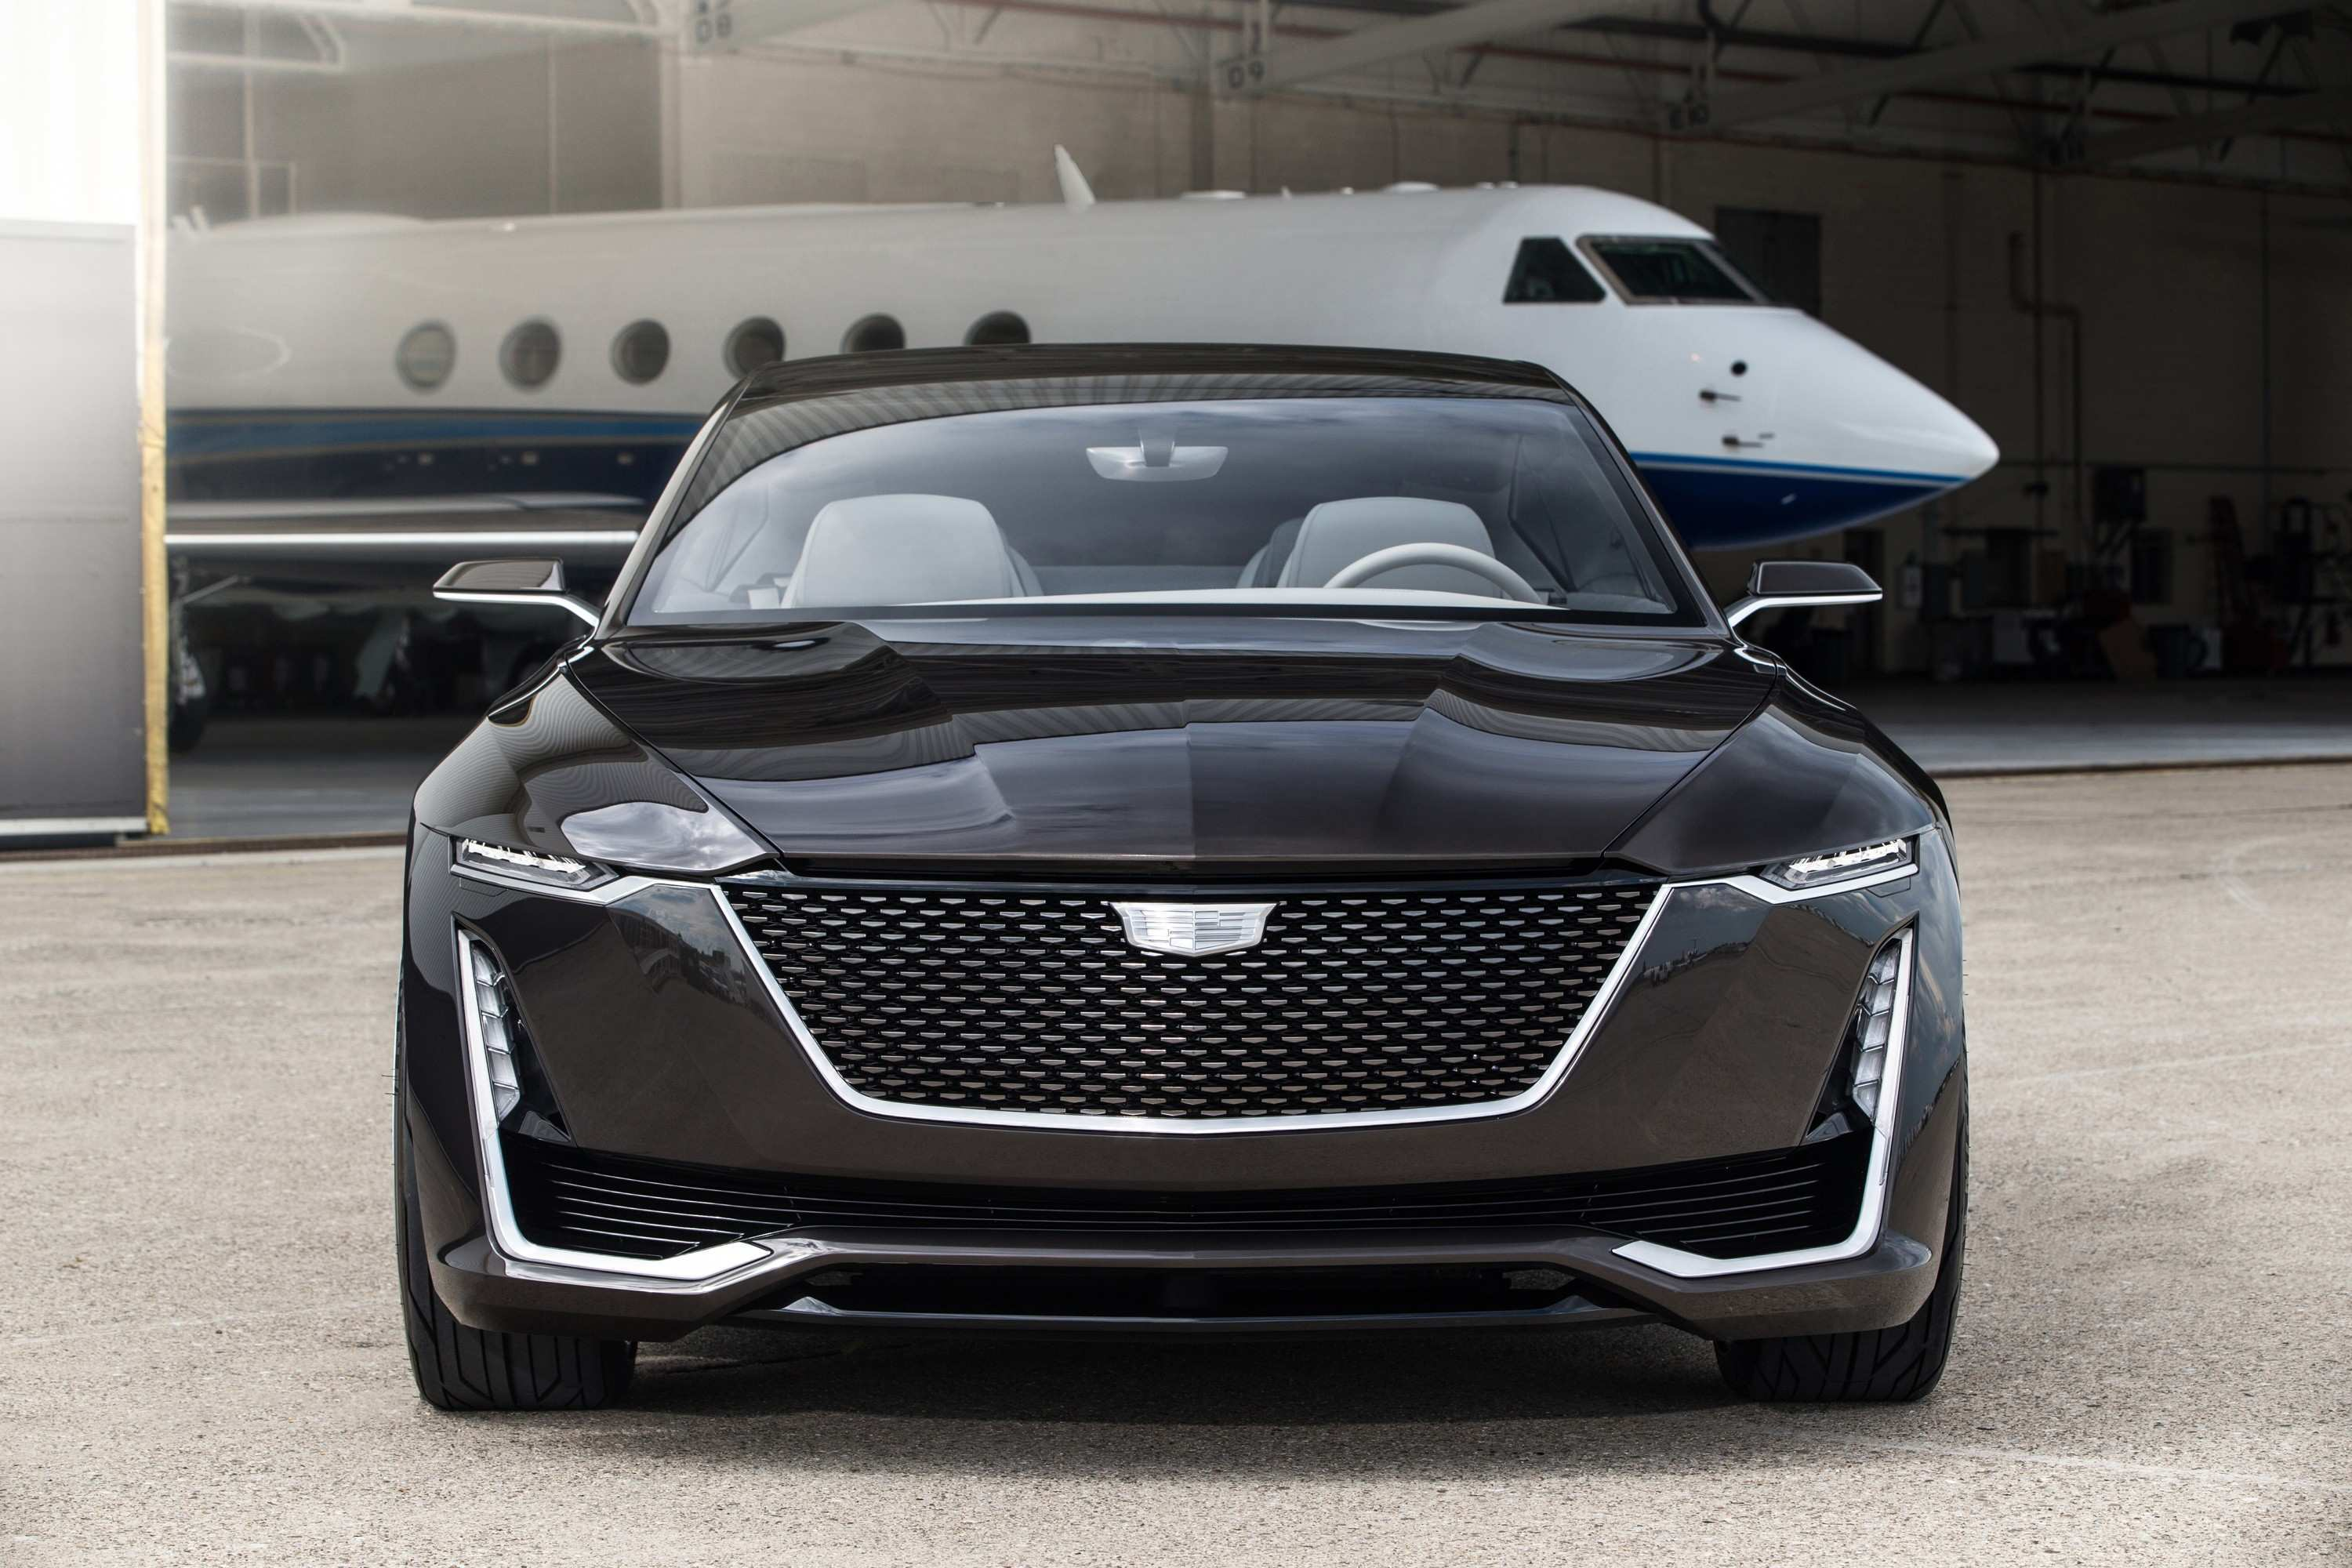 56 Gallery of 2019 Cadillac Ct5 Rumors for 2019 Cadillac Ct5